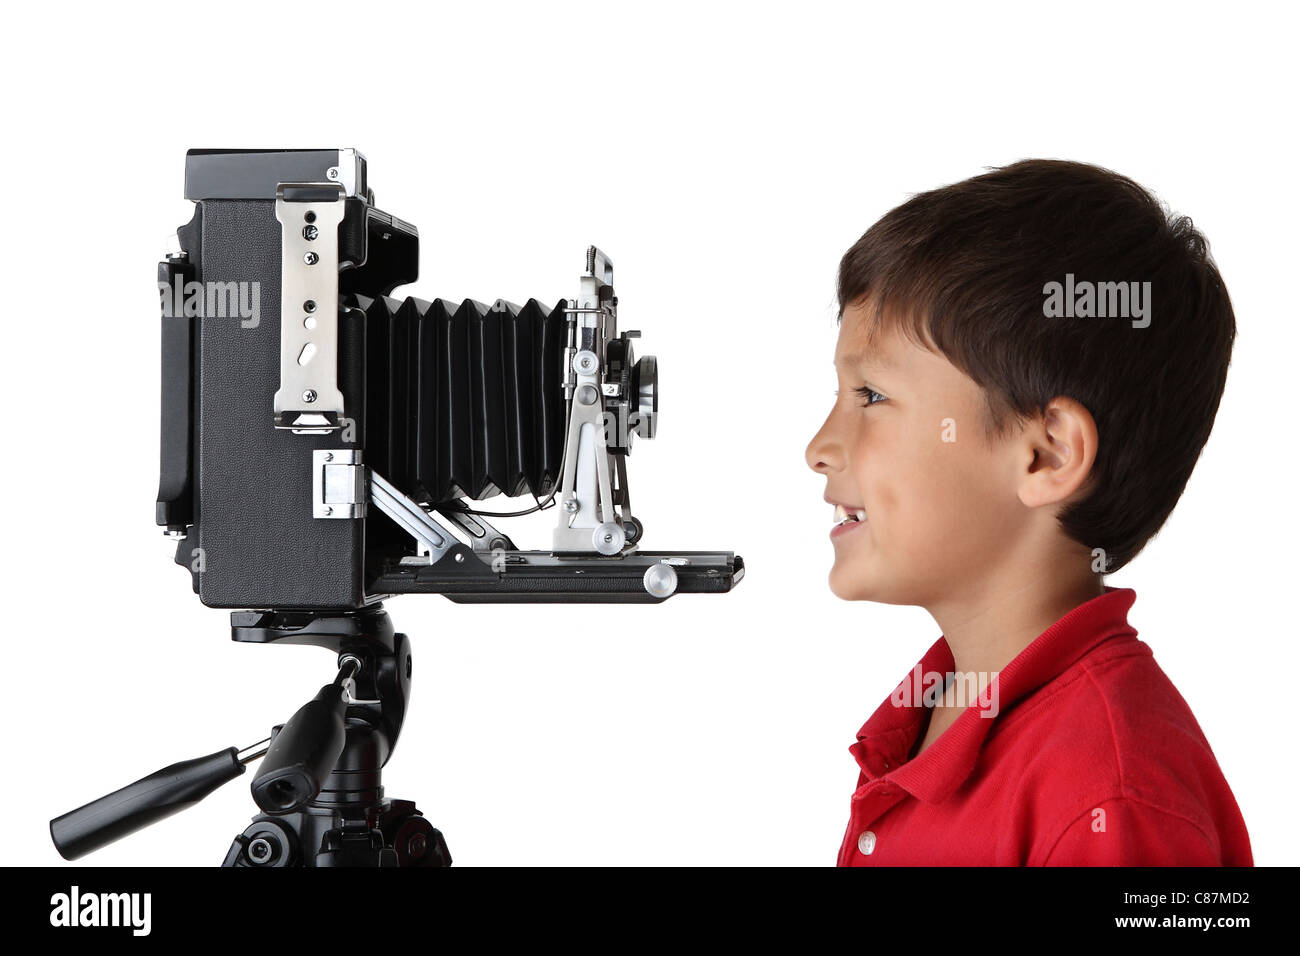 Happy smiling boy in red shirt looking into old press camera on white background - Stock Image